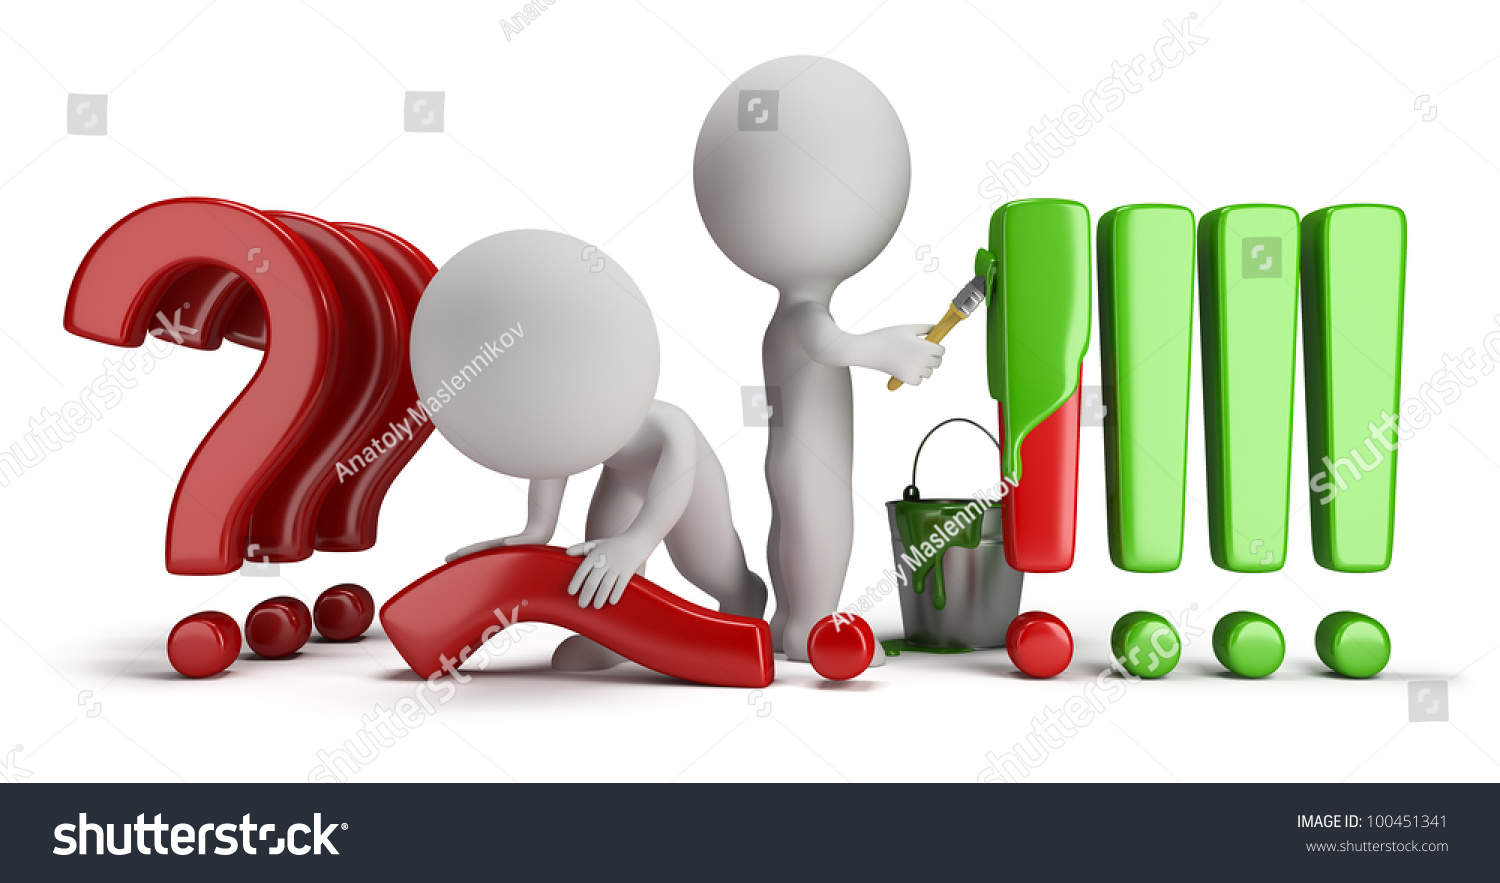 3d person with magnifying glass and question mark stock images image - 3d Small People Straighten Question Marks And Exclamation Marks Painted 3d Image Isolated White